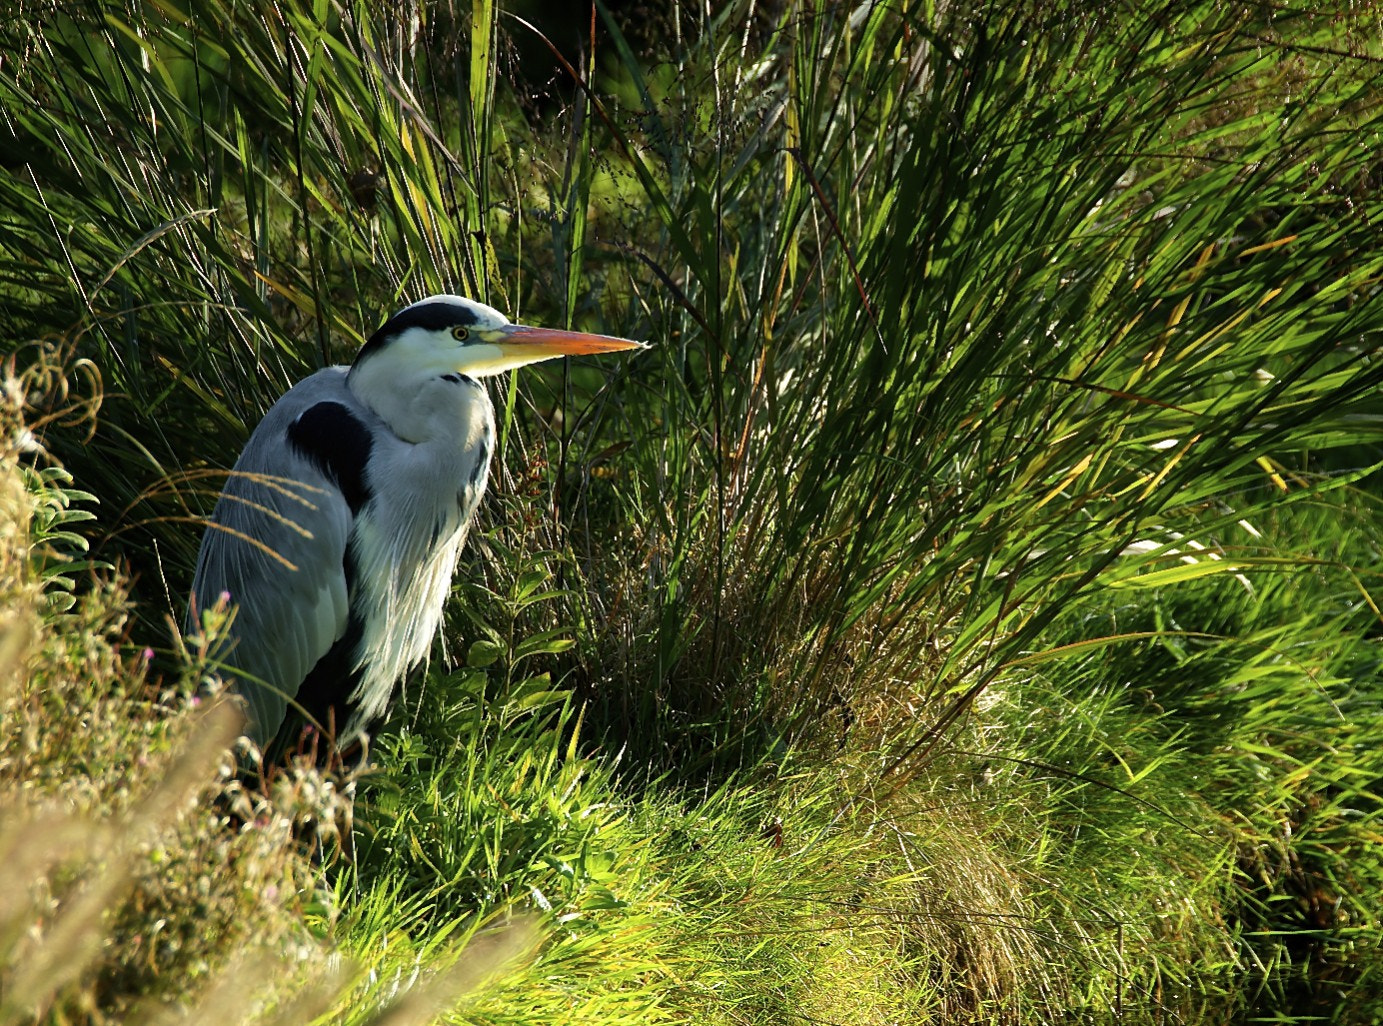 Photograph Heron hiding in grass by John Barker on 500px